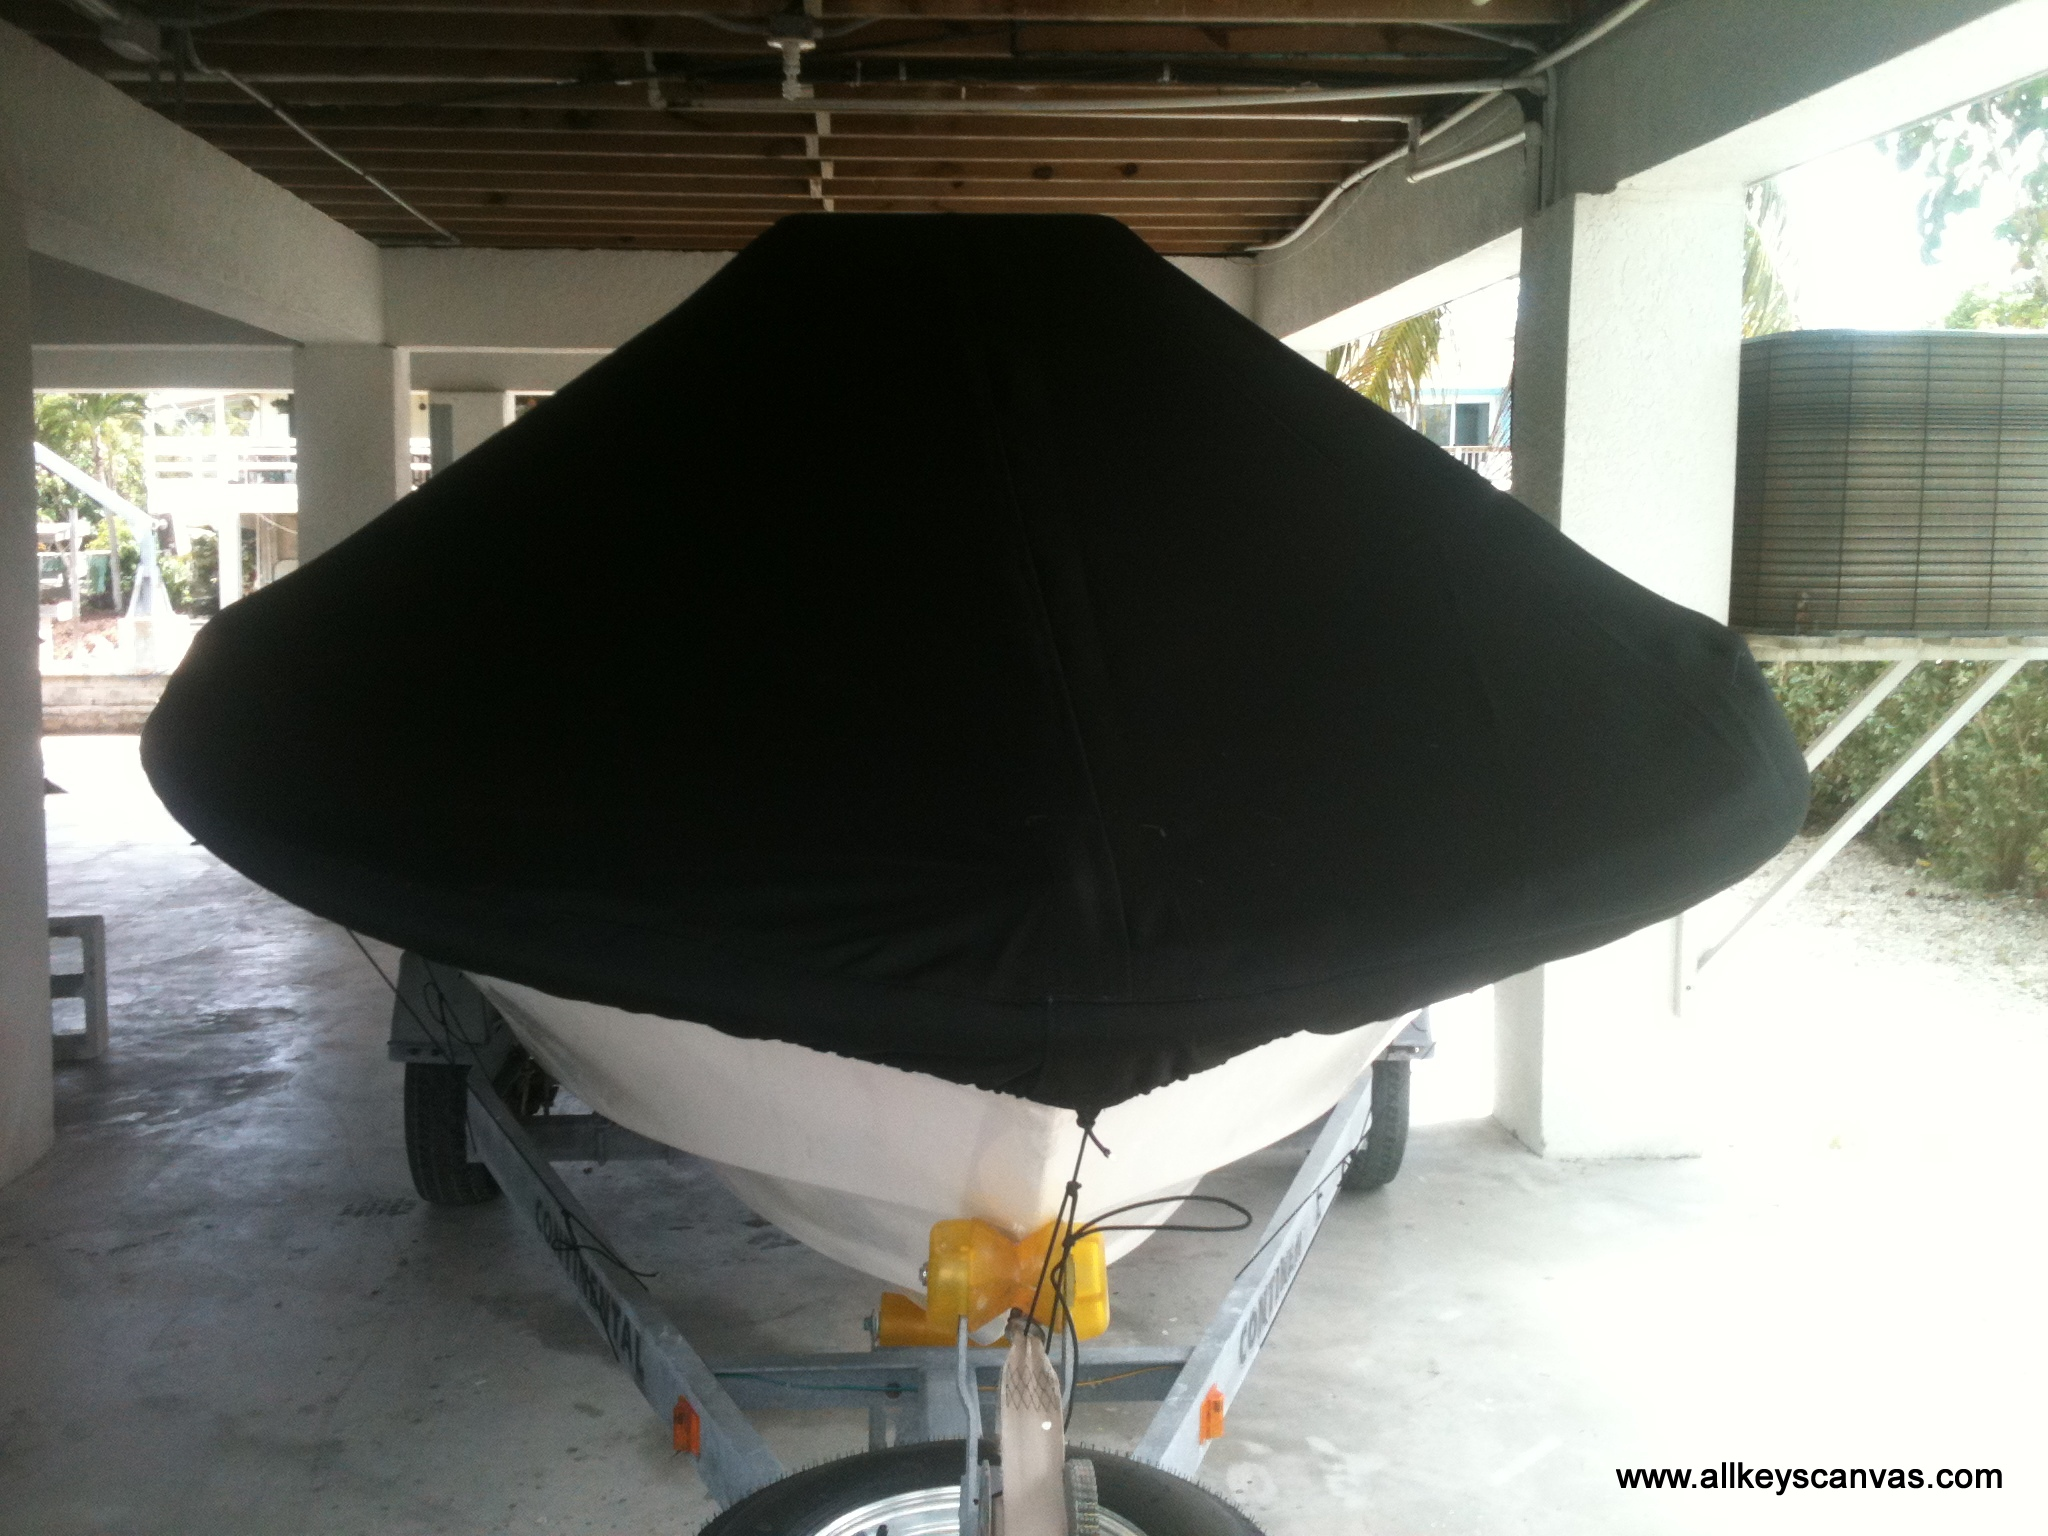 Pictures of Boat Covers